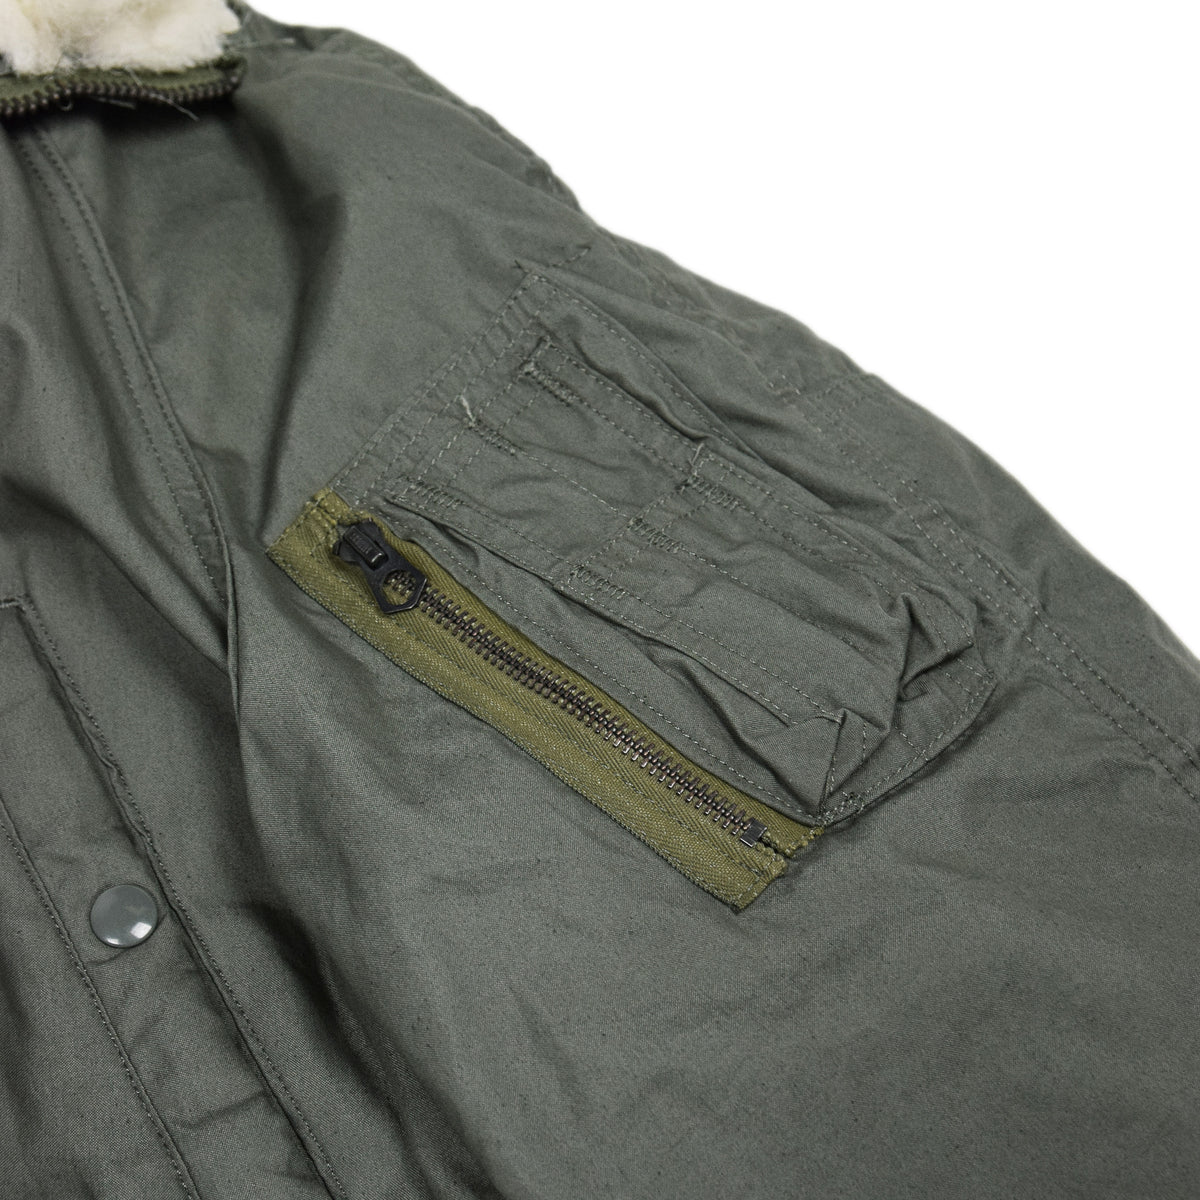 Vintage Deadstock 80s USAF N-3B Extreme Cold Weather Snorkel Parka M Oversized arm pocket